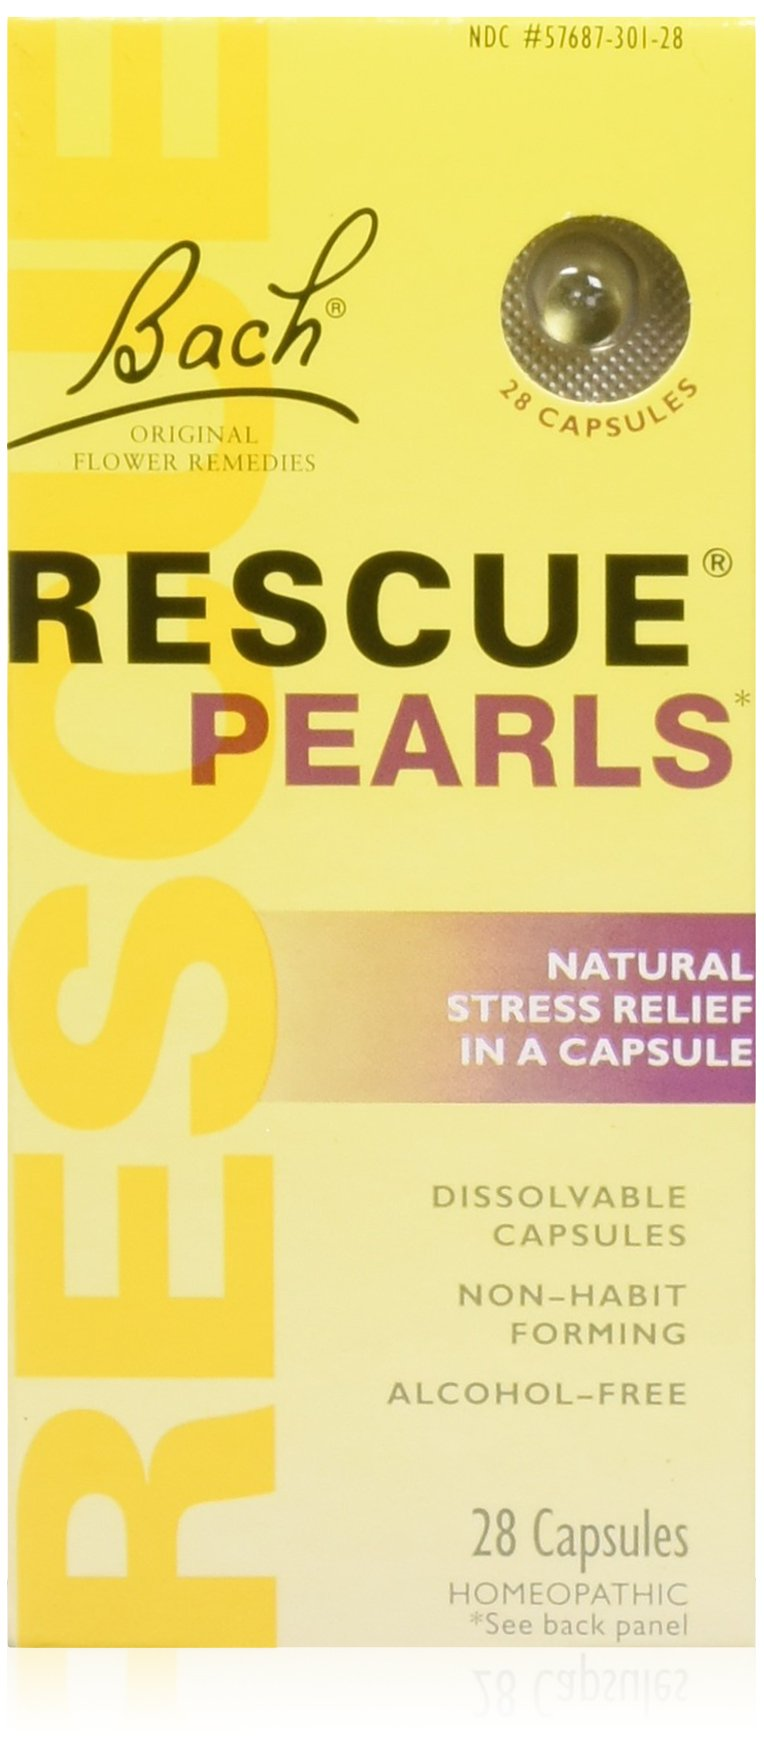 Bach Rescue Pearls Natural Stress Relief,28 Capsules (Pack of 2)